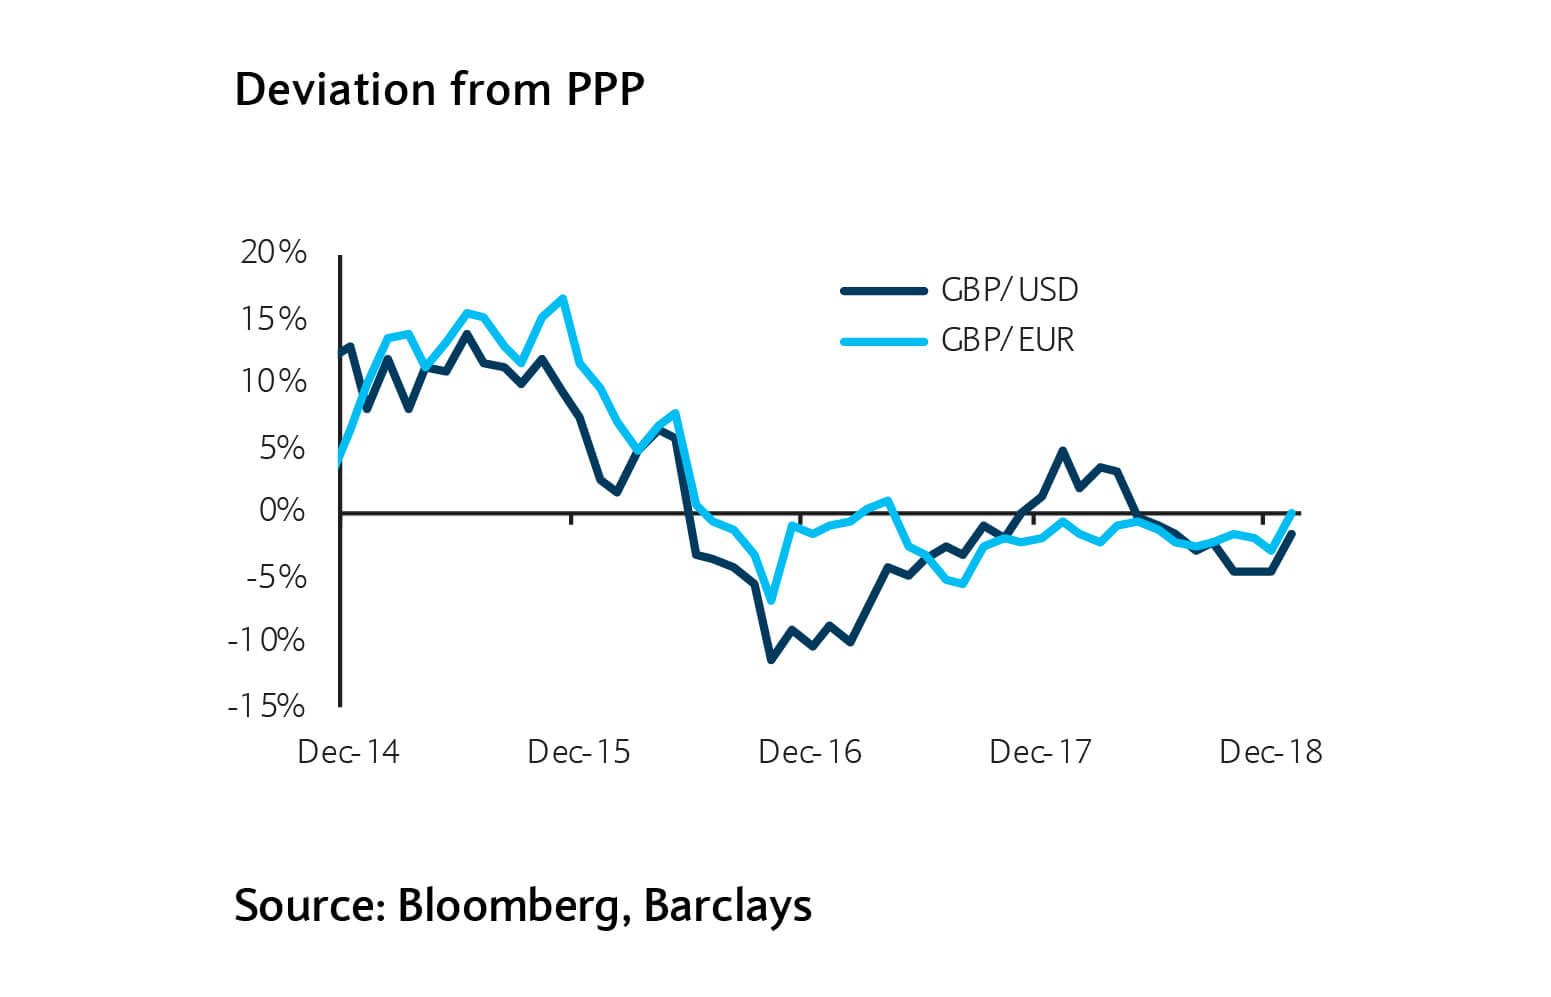 Deviation from PPP